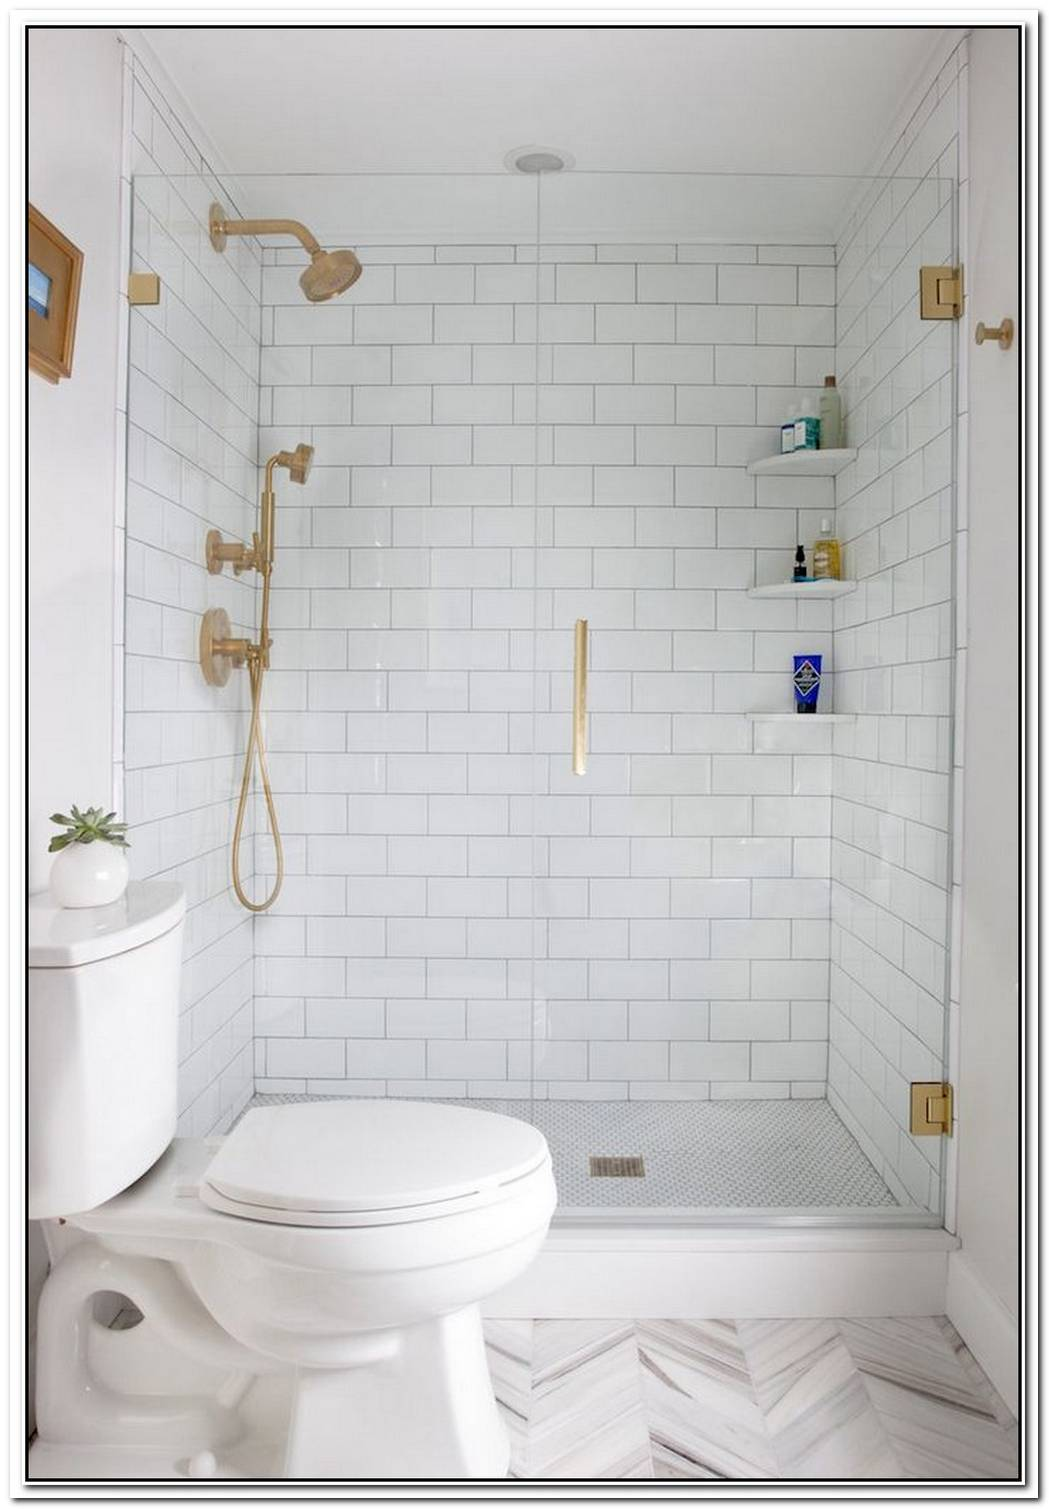 Bathroom Ideas Little Bathroom Small Space